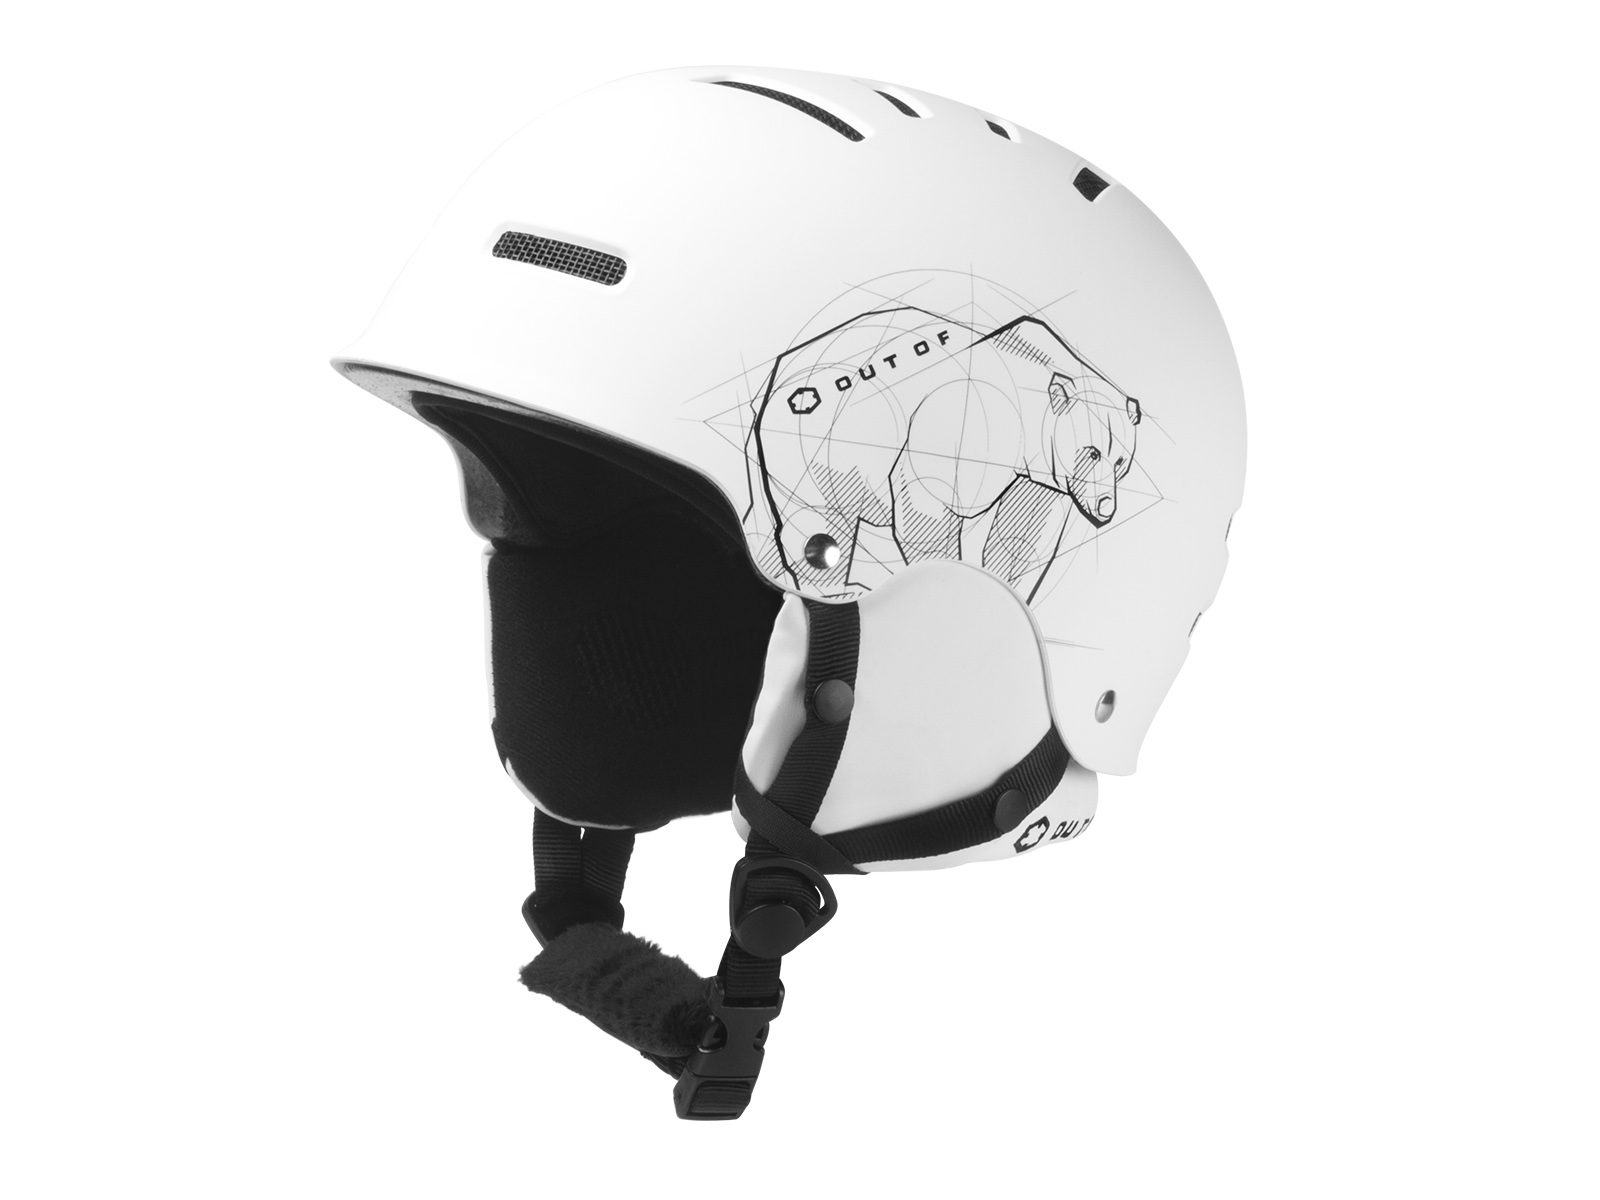 WIPEOUT BEAR HELMET